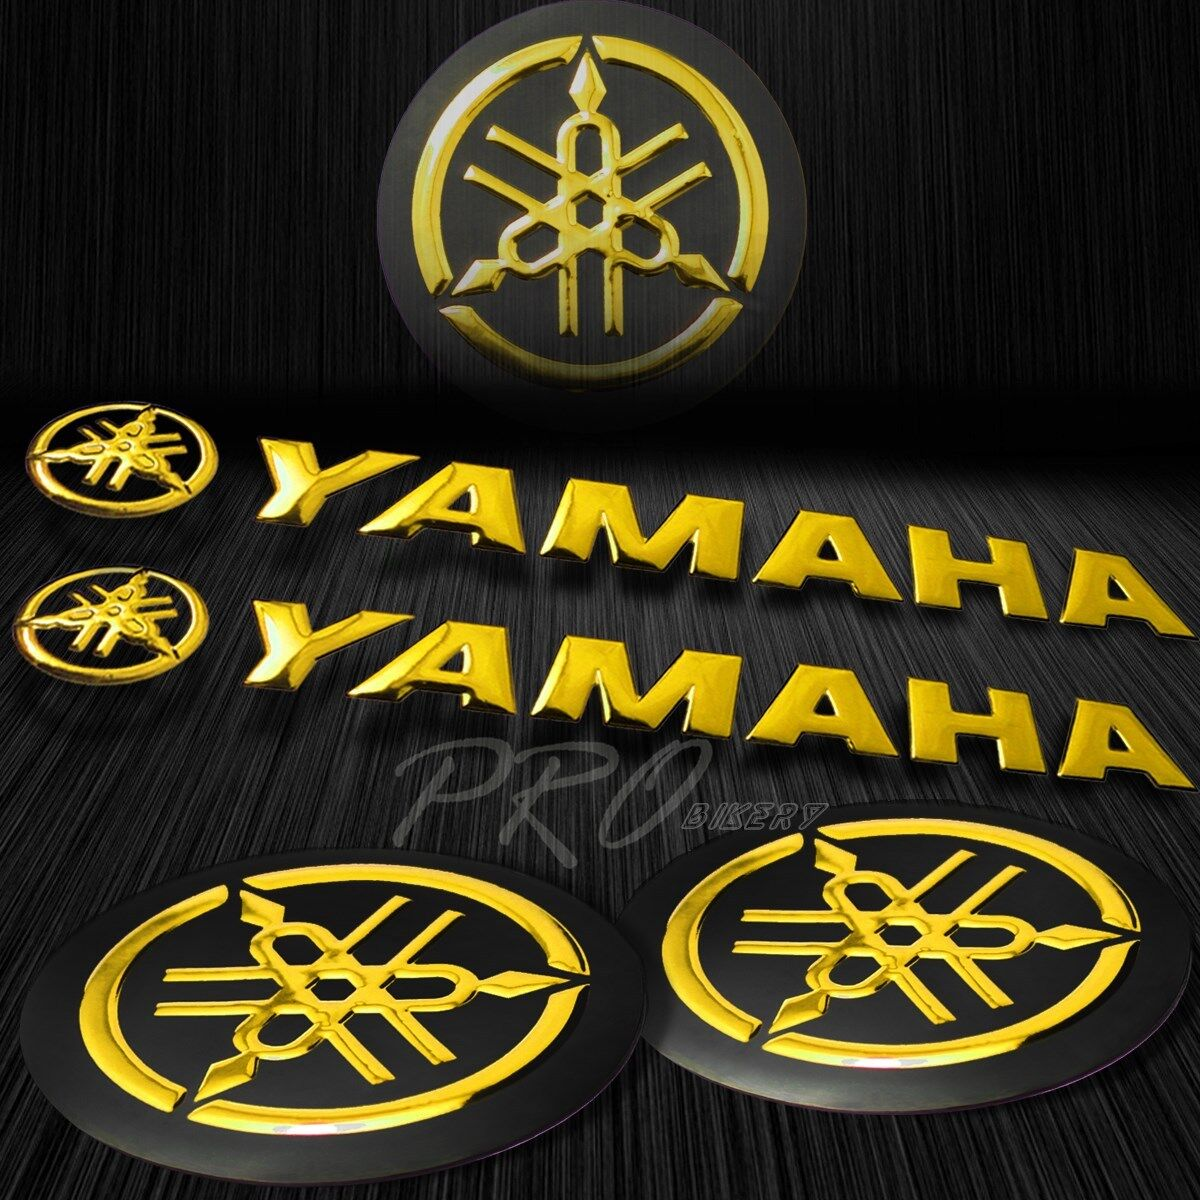 Details about 5 75 chromed logo letter decal 3d glossy fairing emblem sticker for yamaha gold